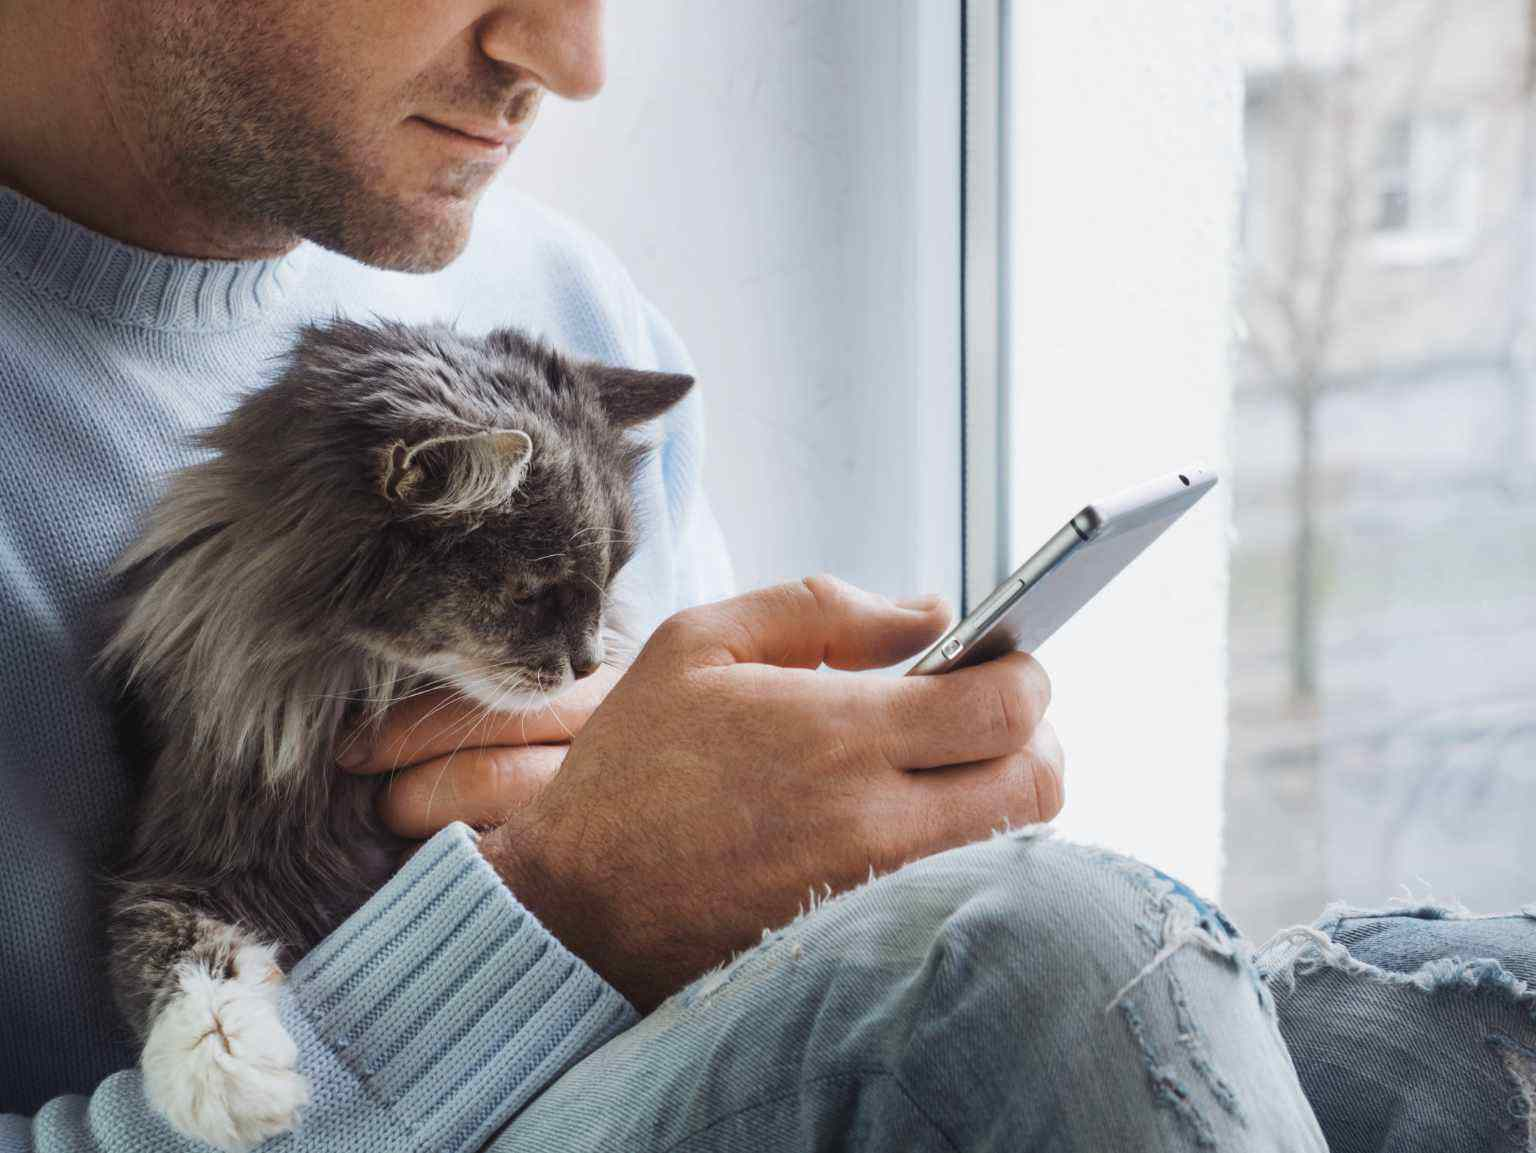 A man holds his cat while reading on his smart phone in front of a window.